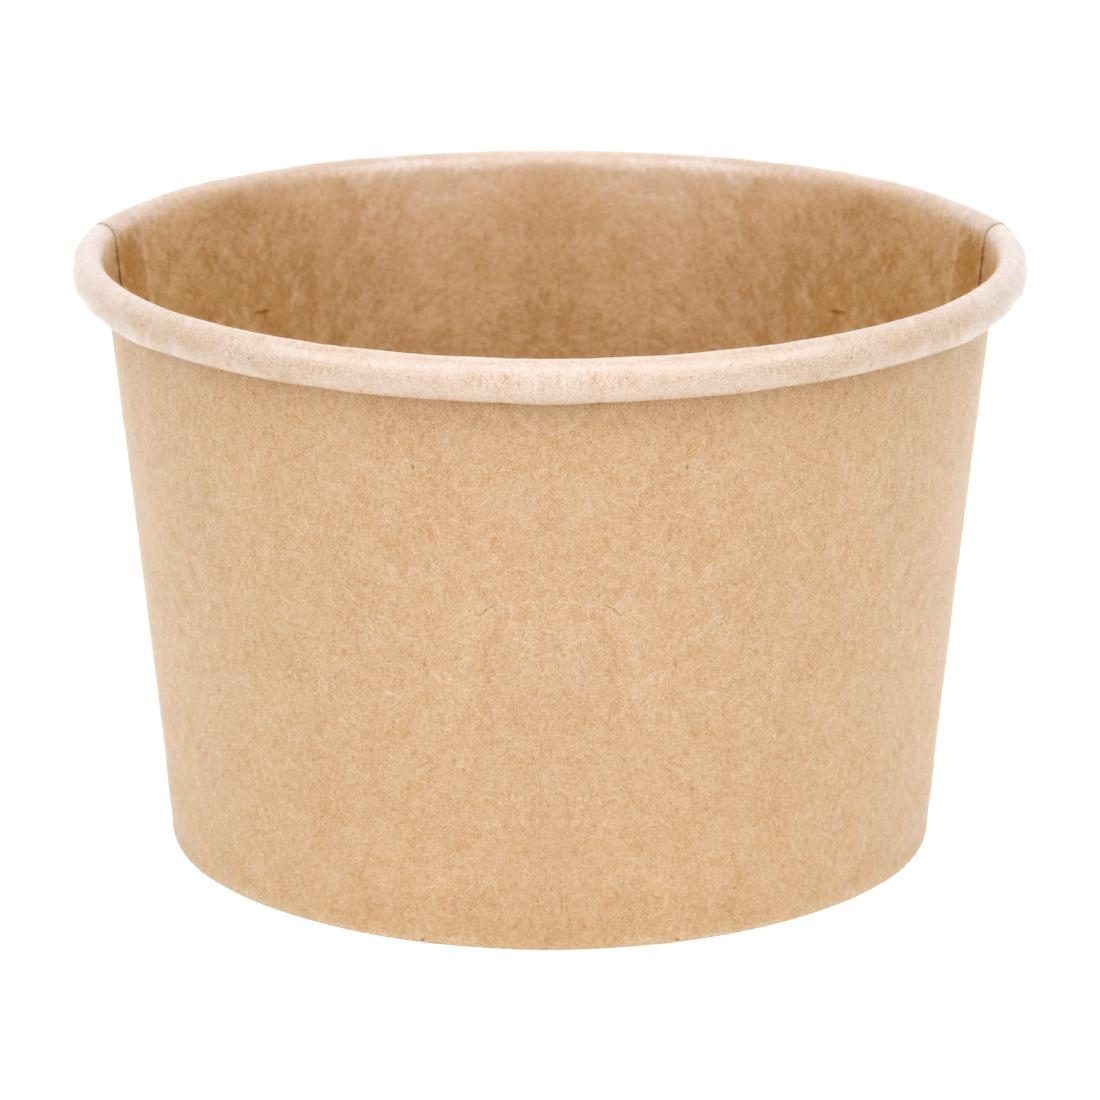 Fiesta Green Soup Container - 8oz 98mm (Pack 500)